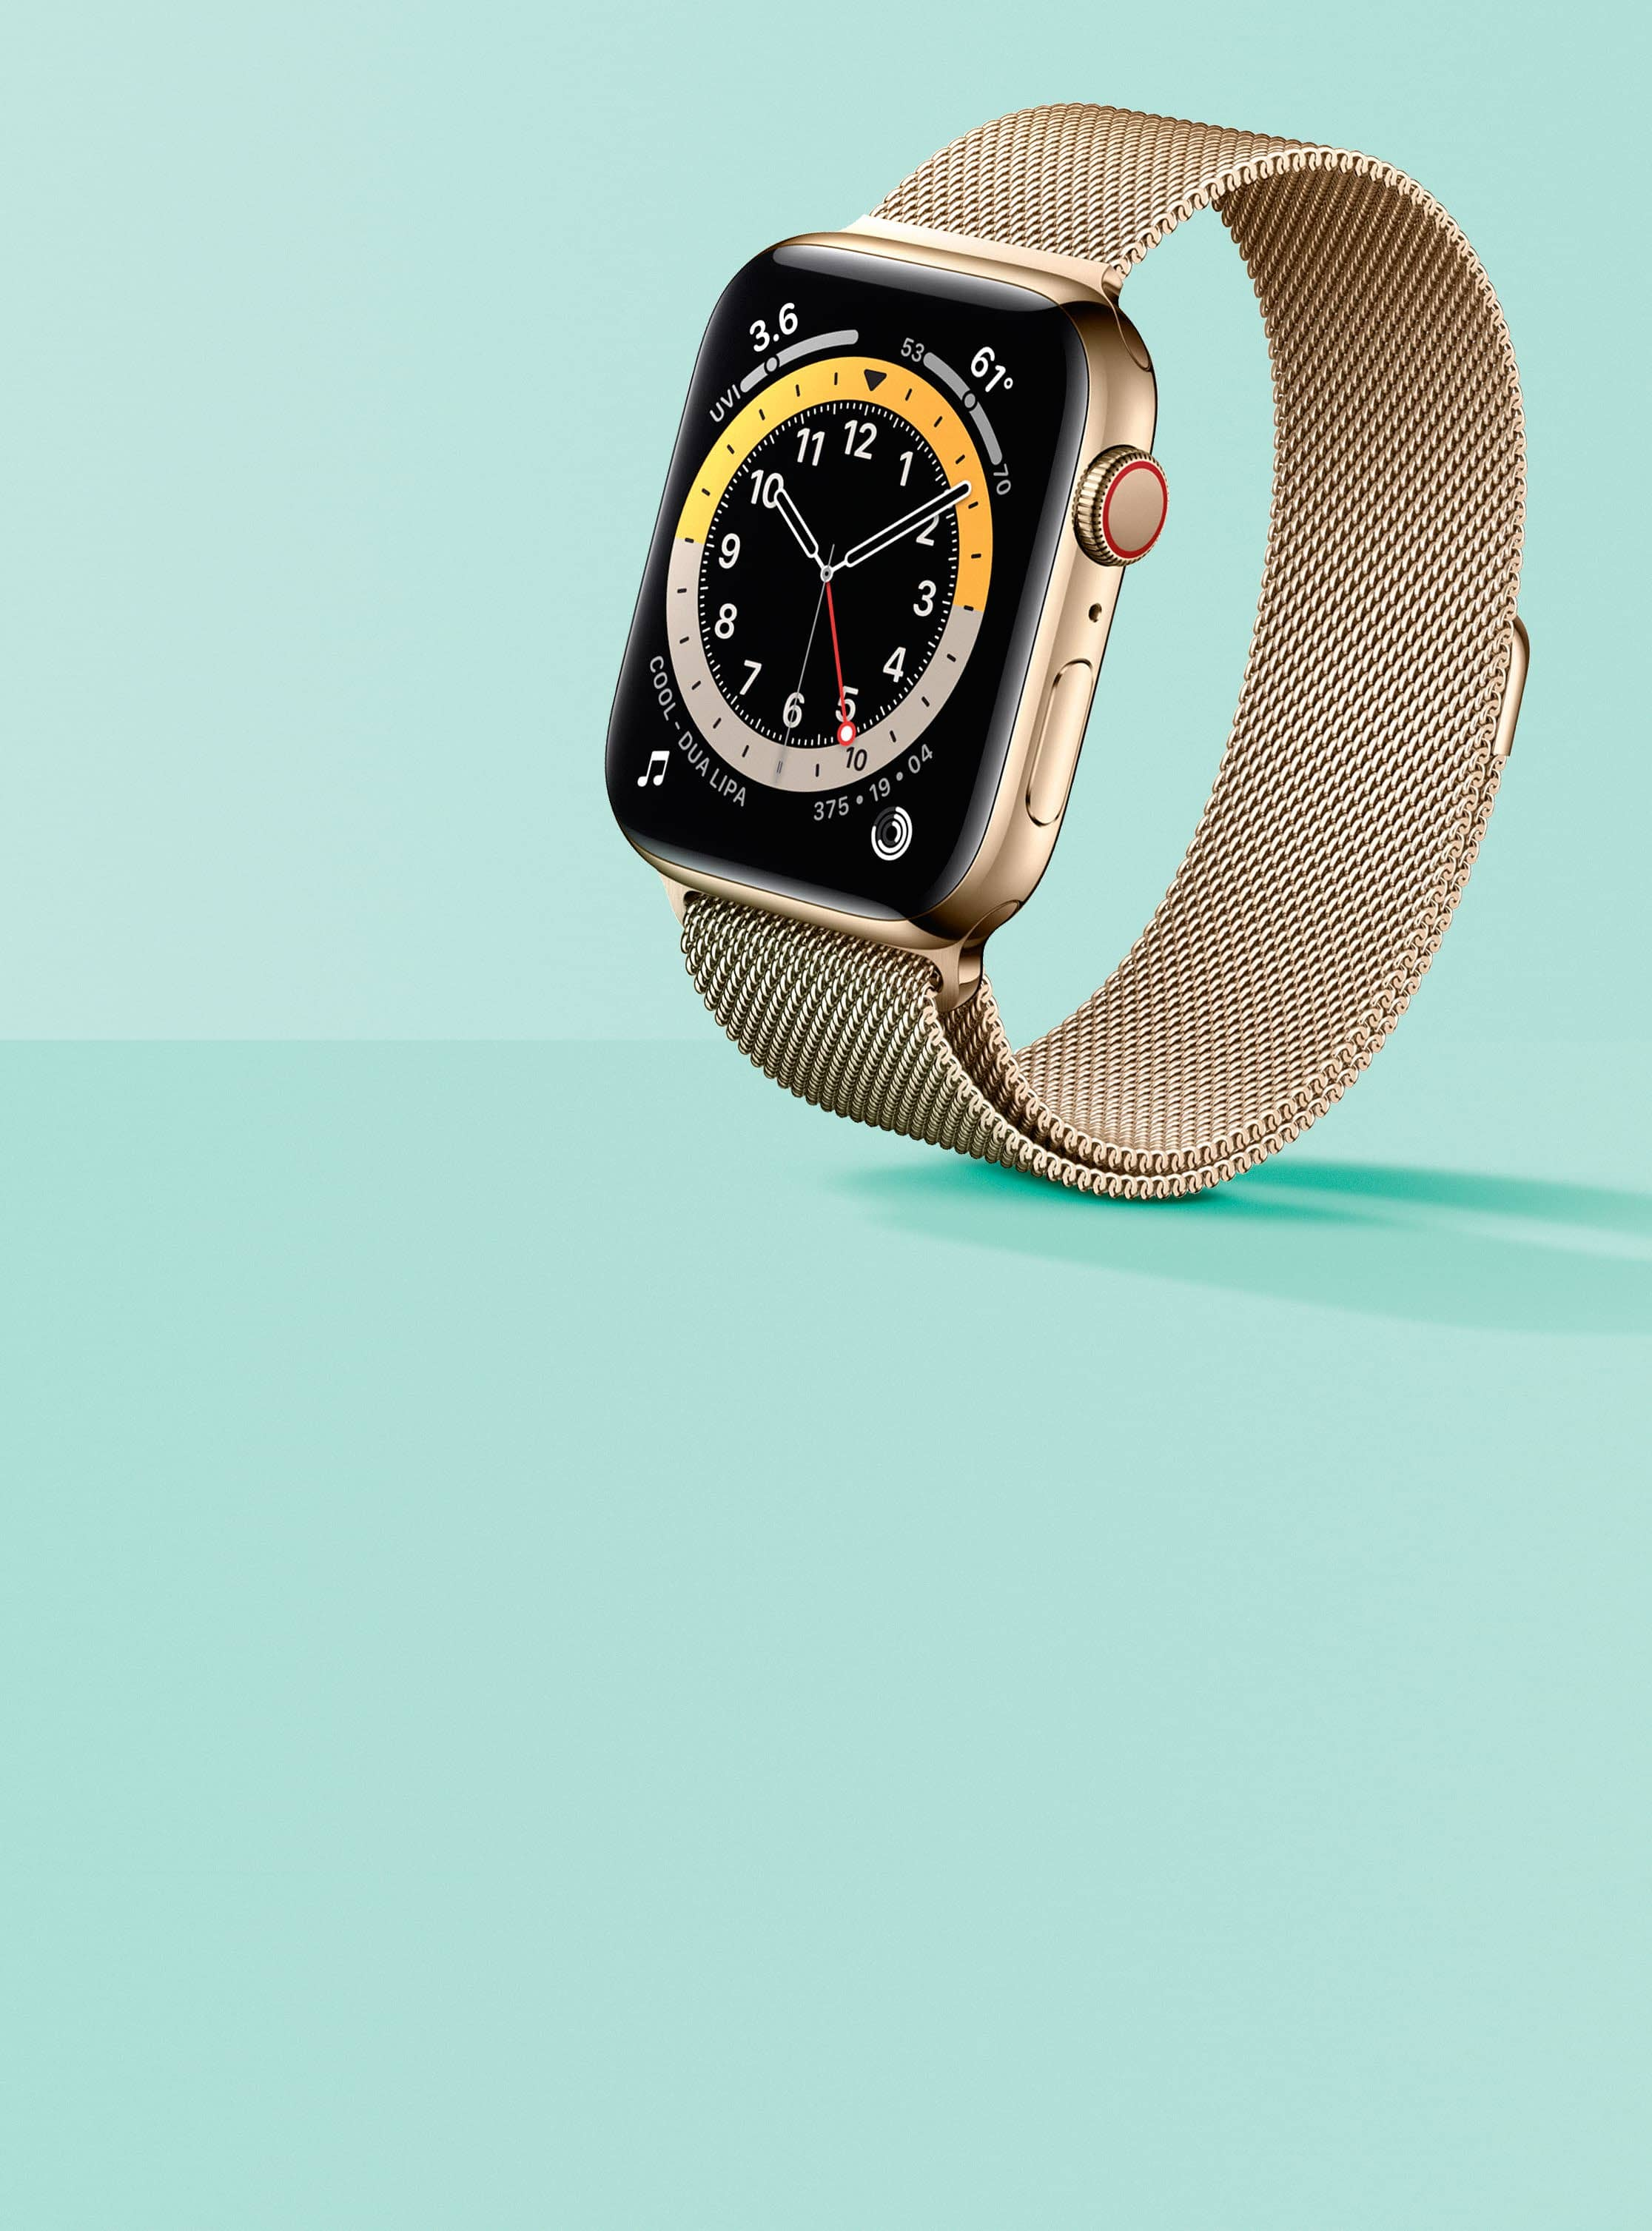 QUALITY TIME - Apple Watch 6